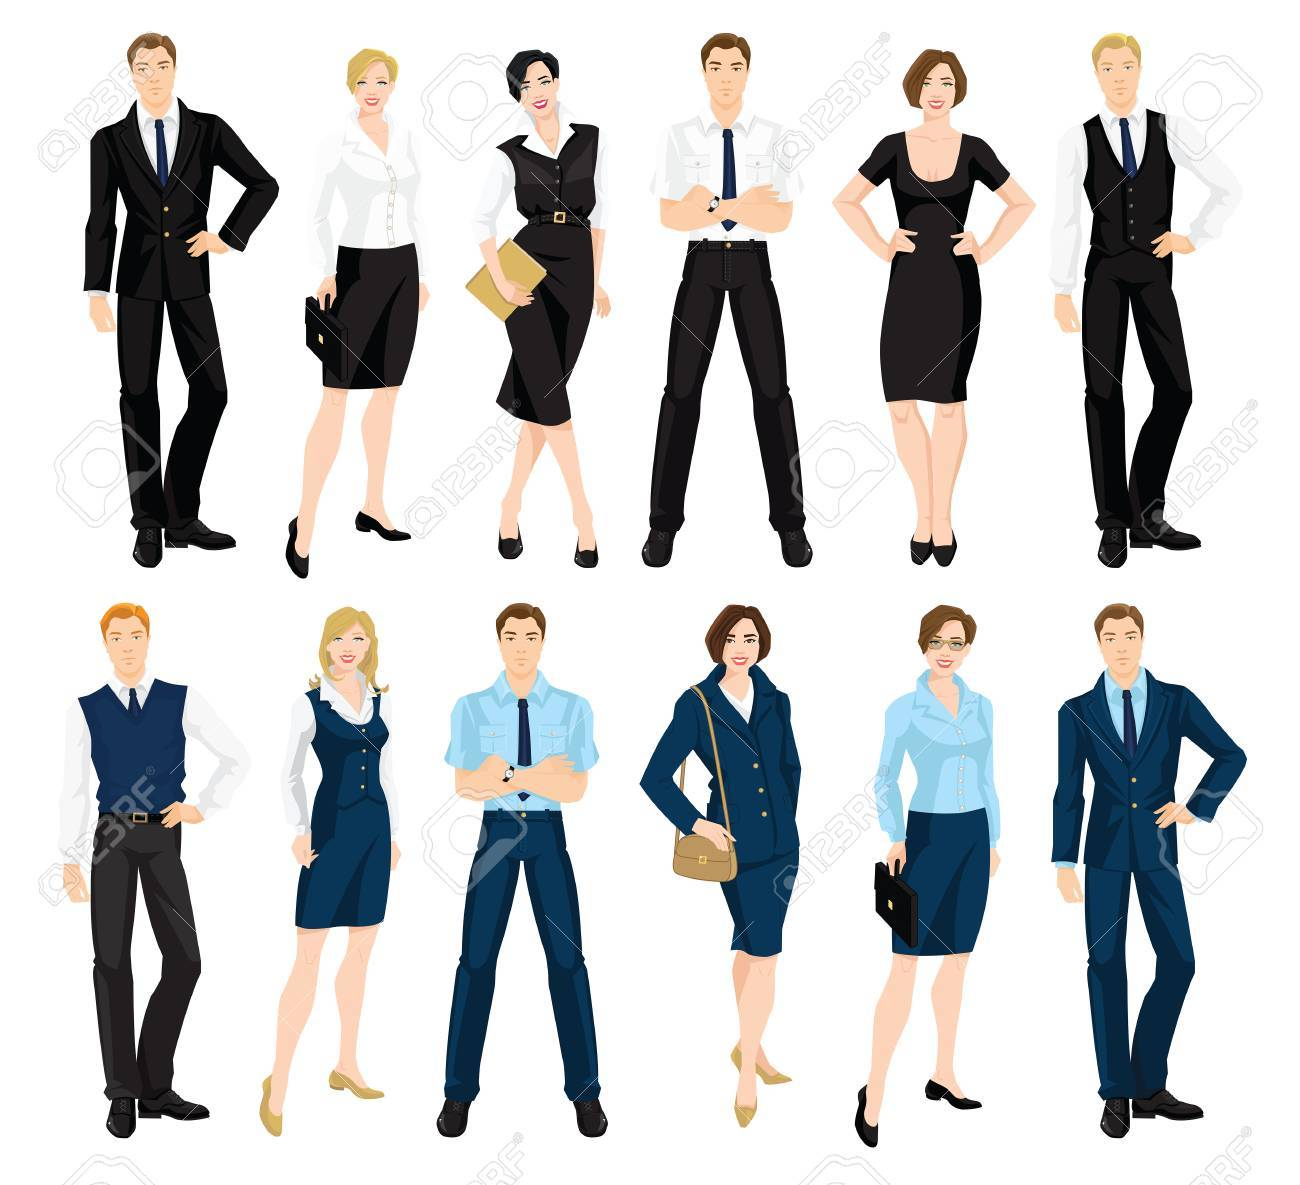 4293a4620f83 Vector - Vector illustration of corporate dress code. Man and woman in  official blue and black suits isolated on white background. Formal wardrobe.